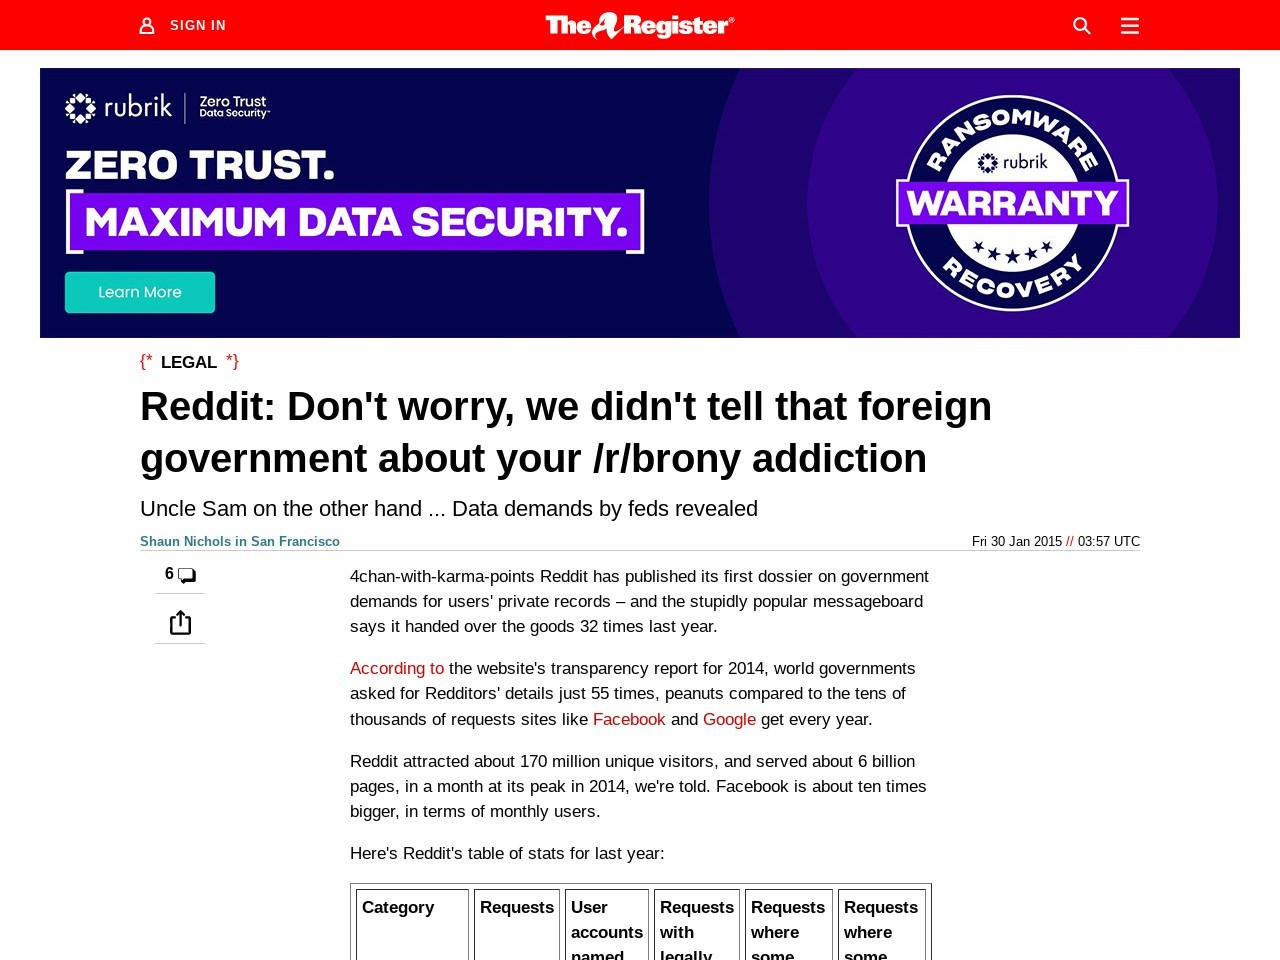 Reddit: Don't worry, we didn't tell that foreign government about your /r/brony addiction